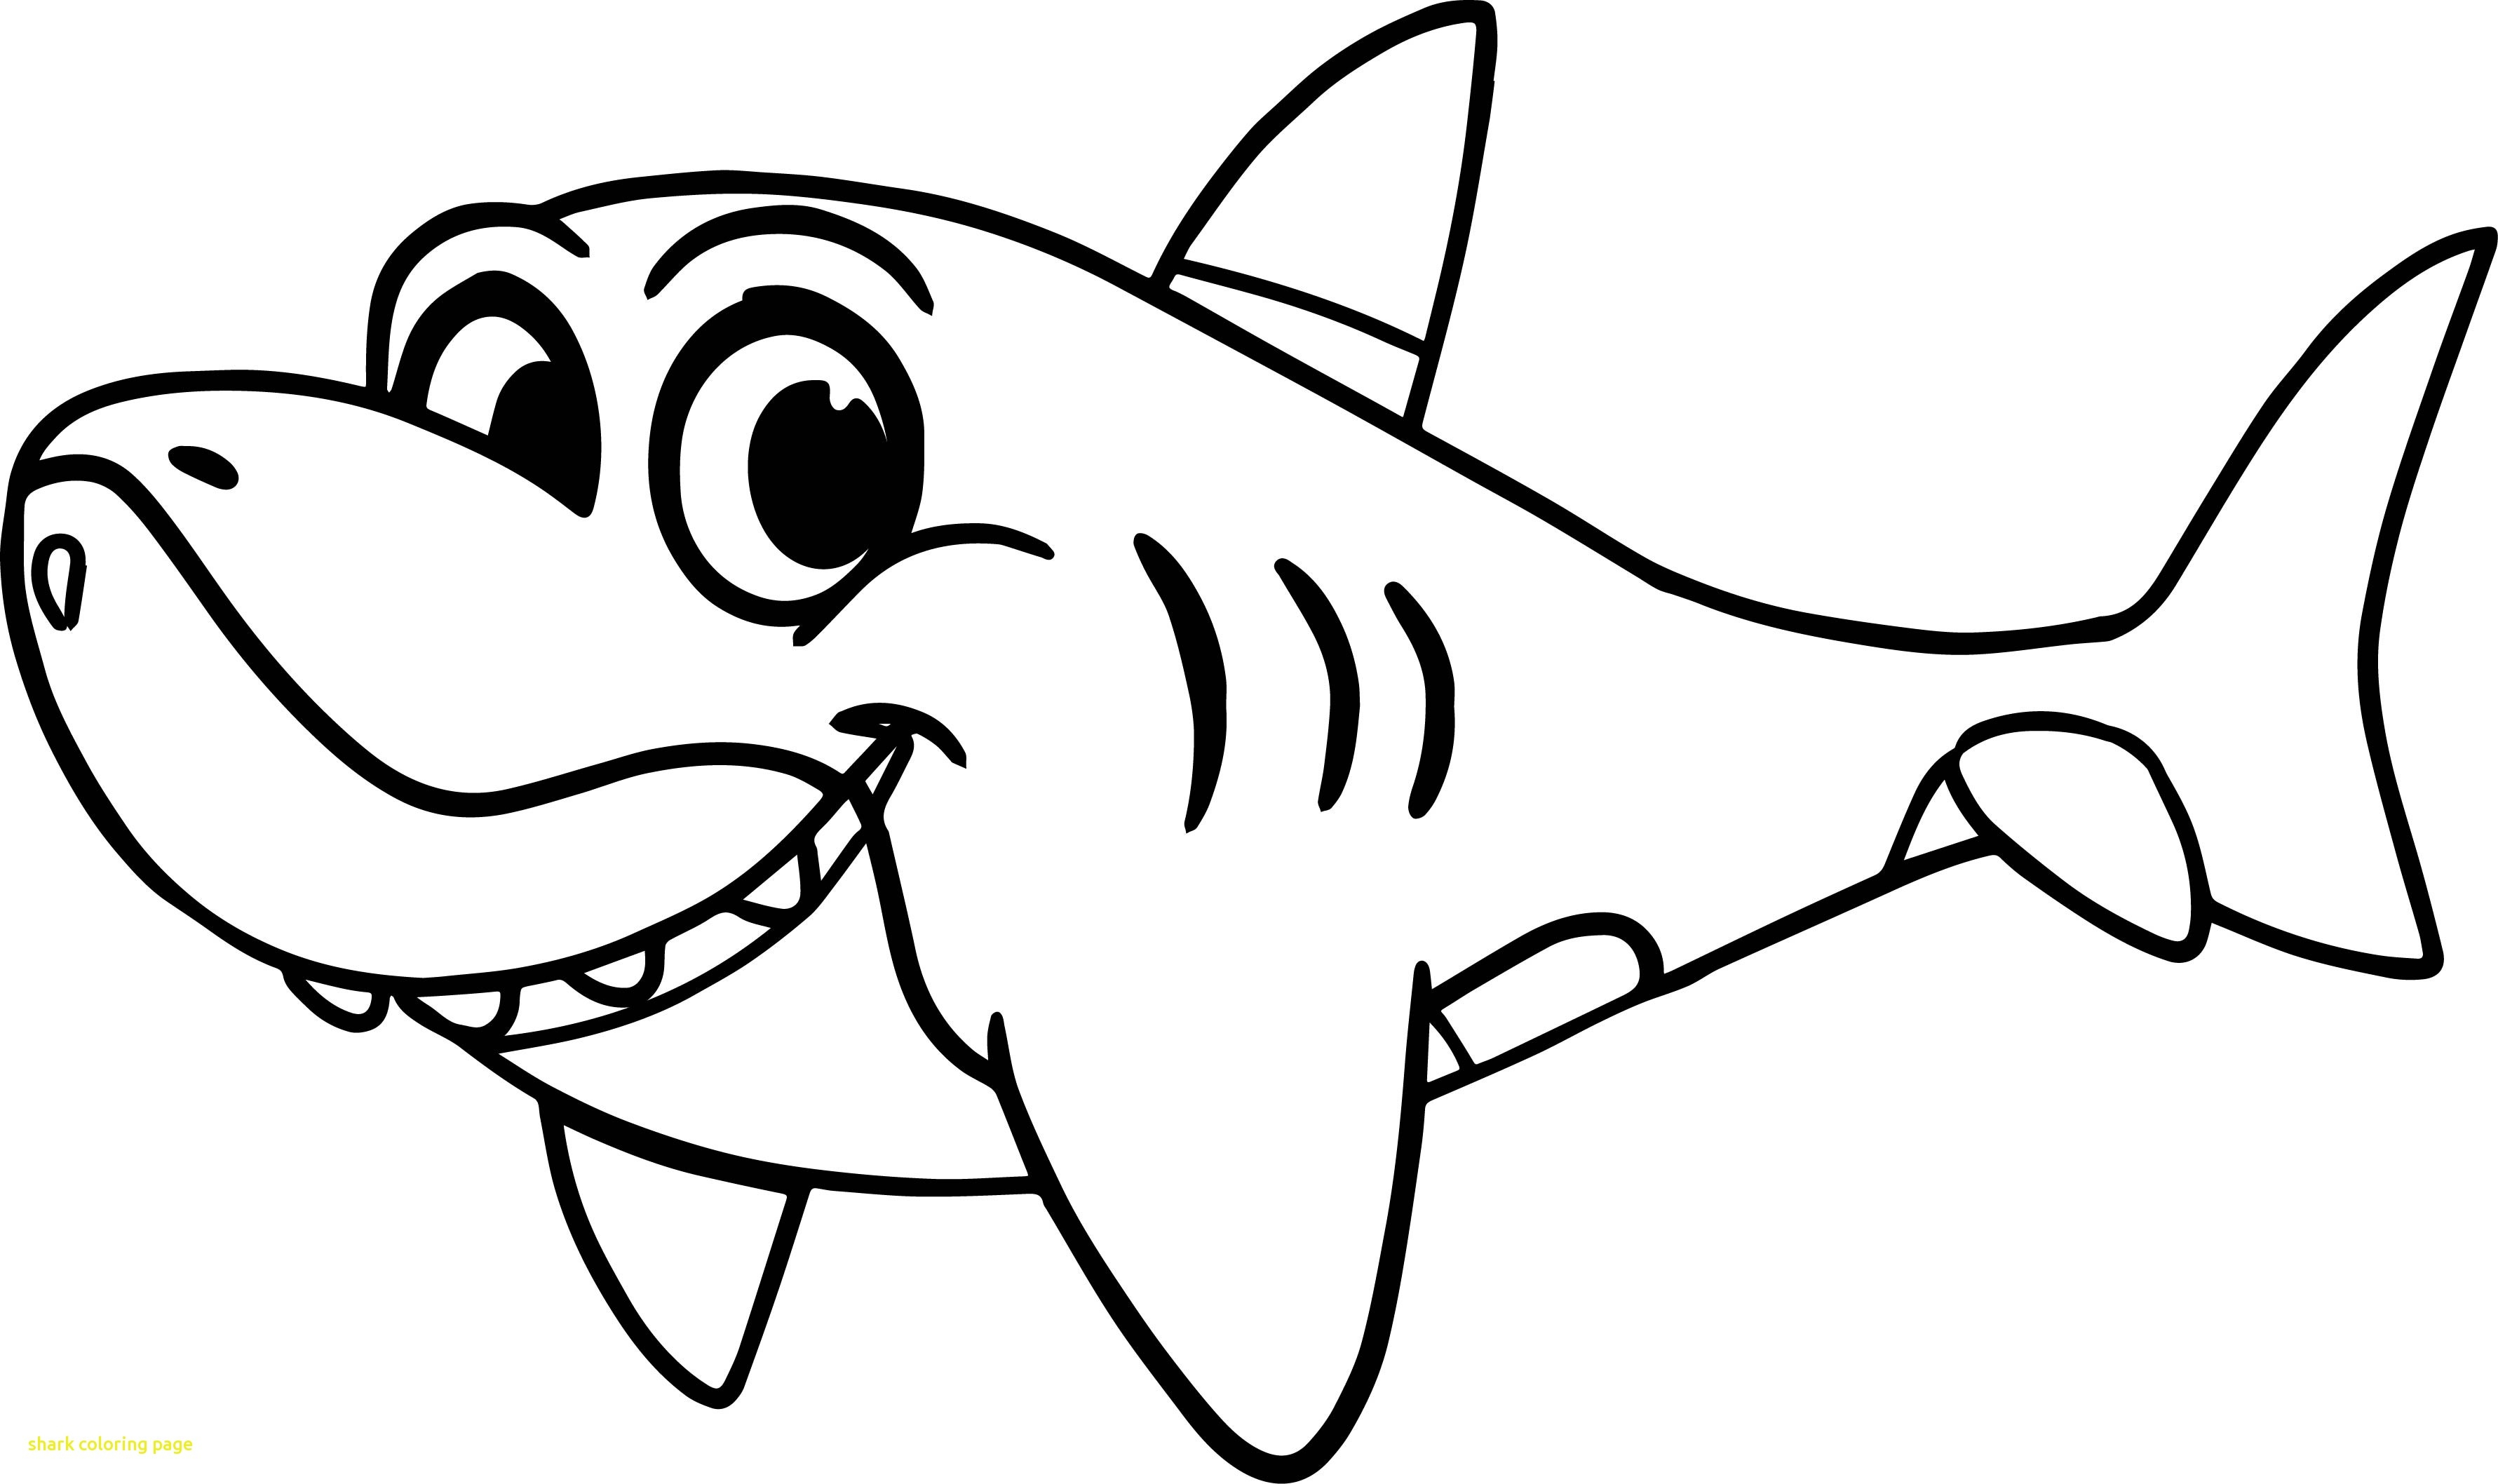 3562x2116 Hammerhead Shark Coloring Page Hammerhead Shark Coloring Page